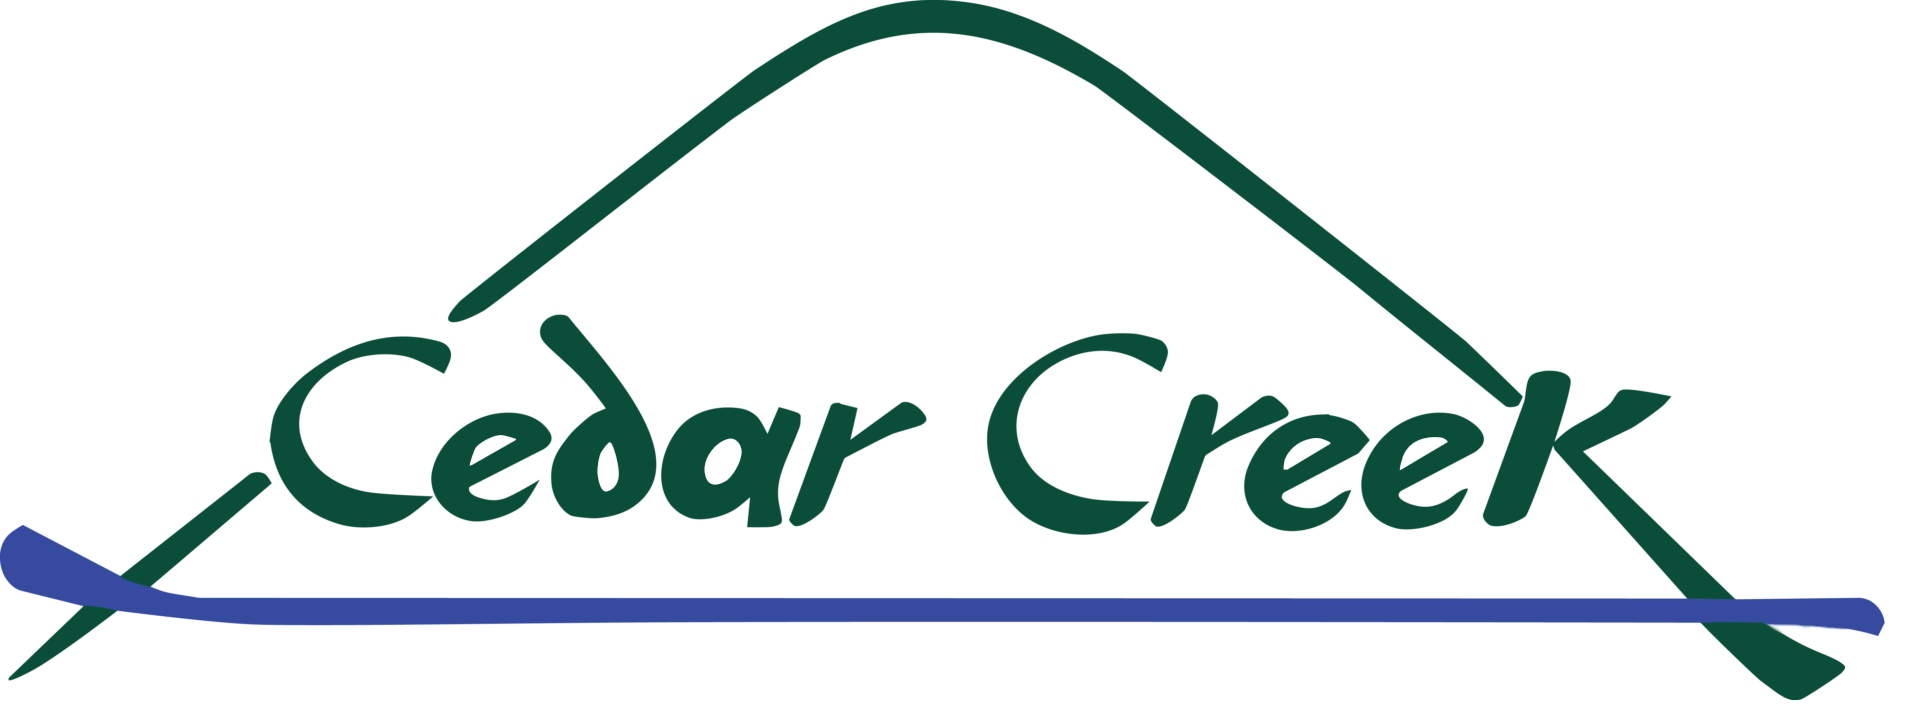 Cedar-Creek-Logo3